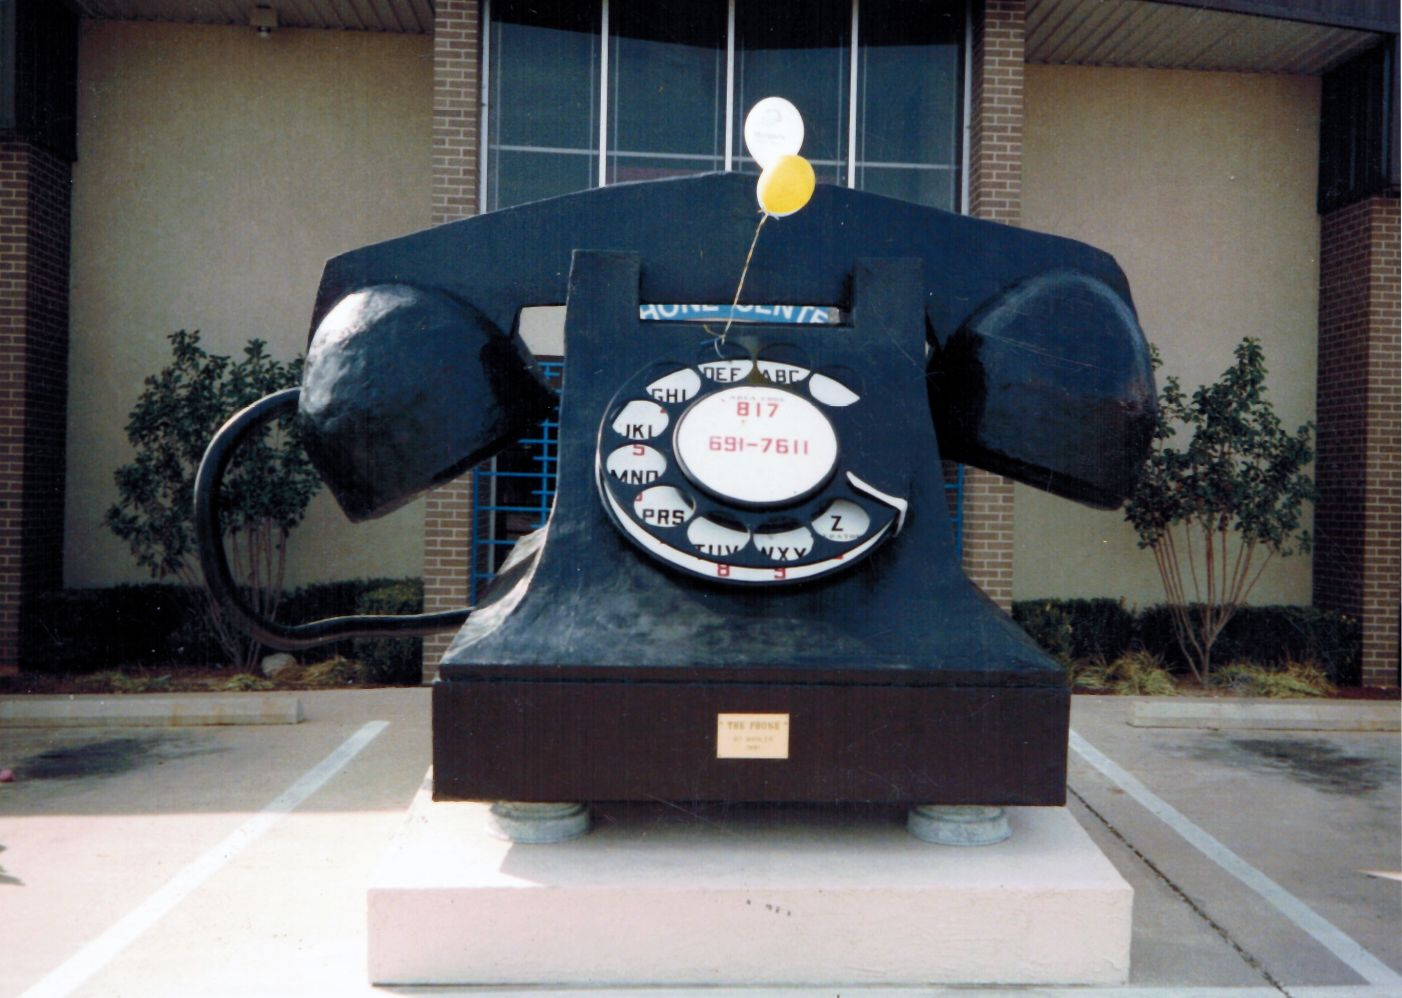 World's Largest Telephone my dad built for Southwest Telecom/MCI in Wichita Falls, Tx. It was sold to a Hollywood production company and used in end credits. Holler if you know which one.